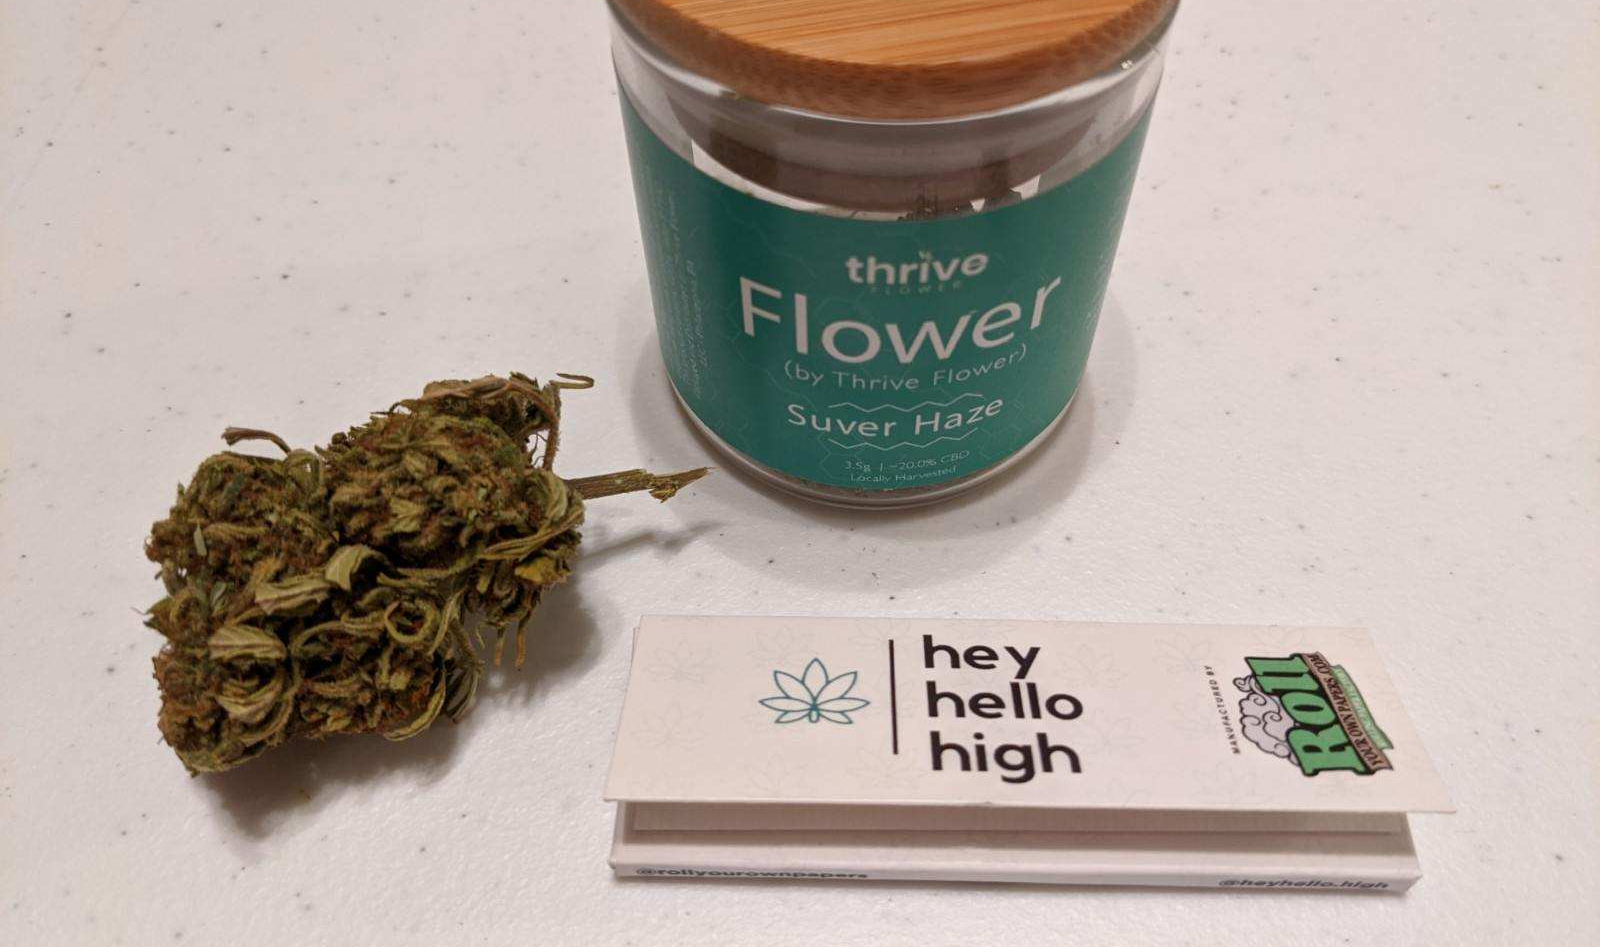 HeyHelloHigh - Thrive Flower CBD review